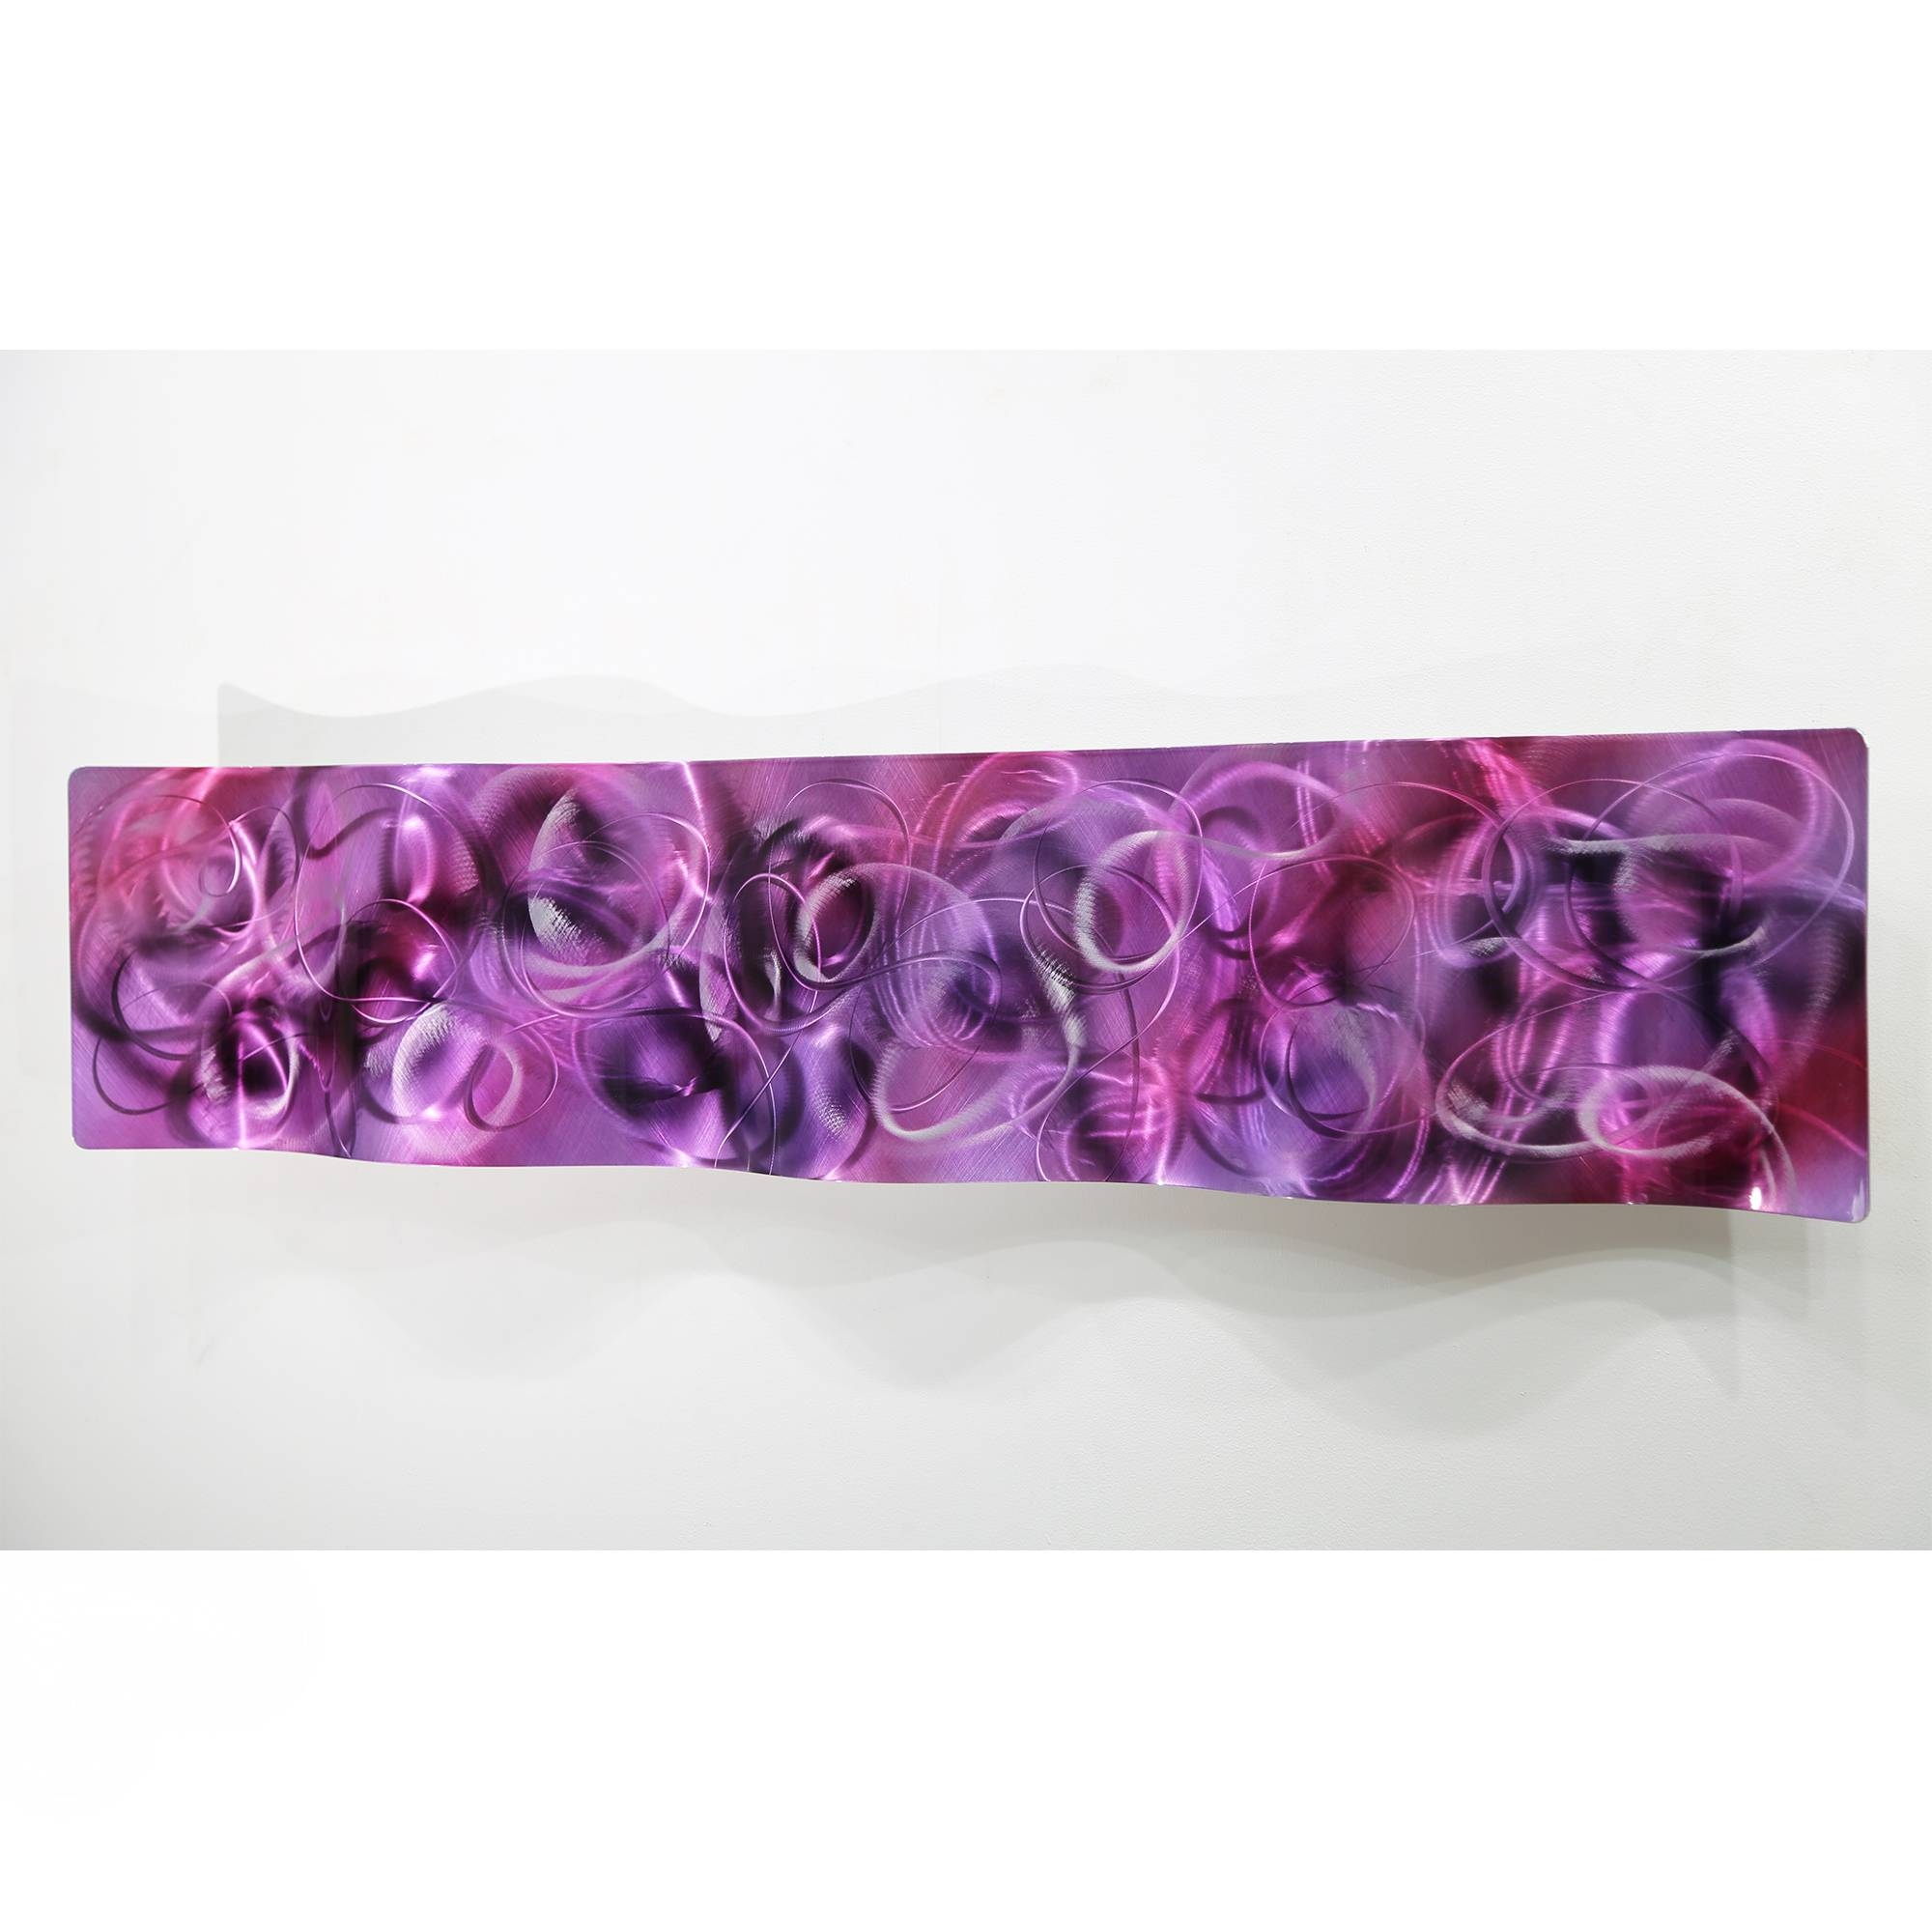 Metal Abstract Modern Painting Wall Art Sculpture Purple Majesty Throughout 2018 Pink Metal Wall Art (  sc 1 st  Wall Art and Wall Decor Ideas & Displaying Photos of Pink Metal Wall Art (View 3 of 20 Photos)